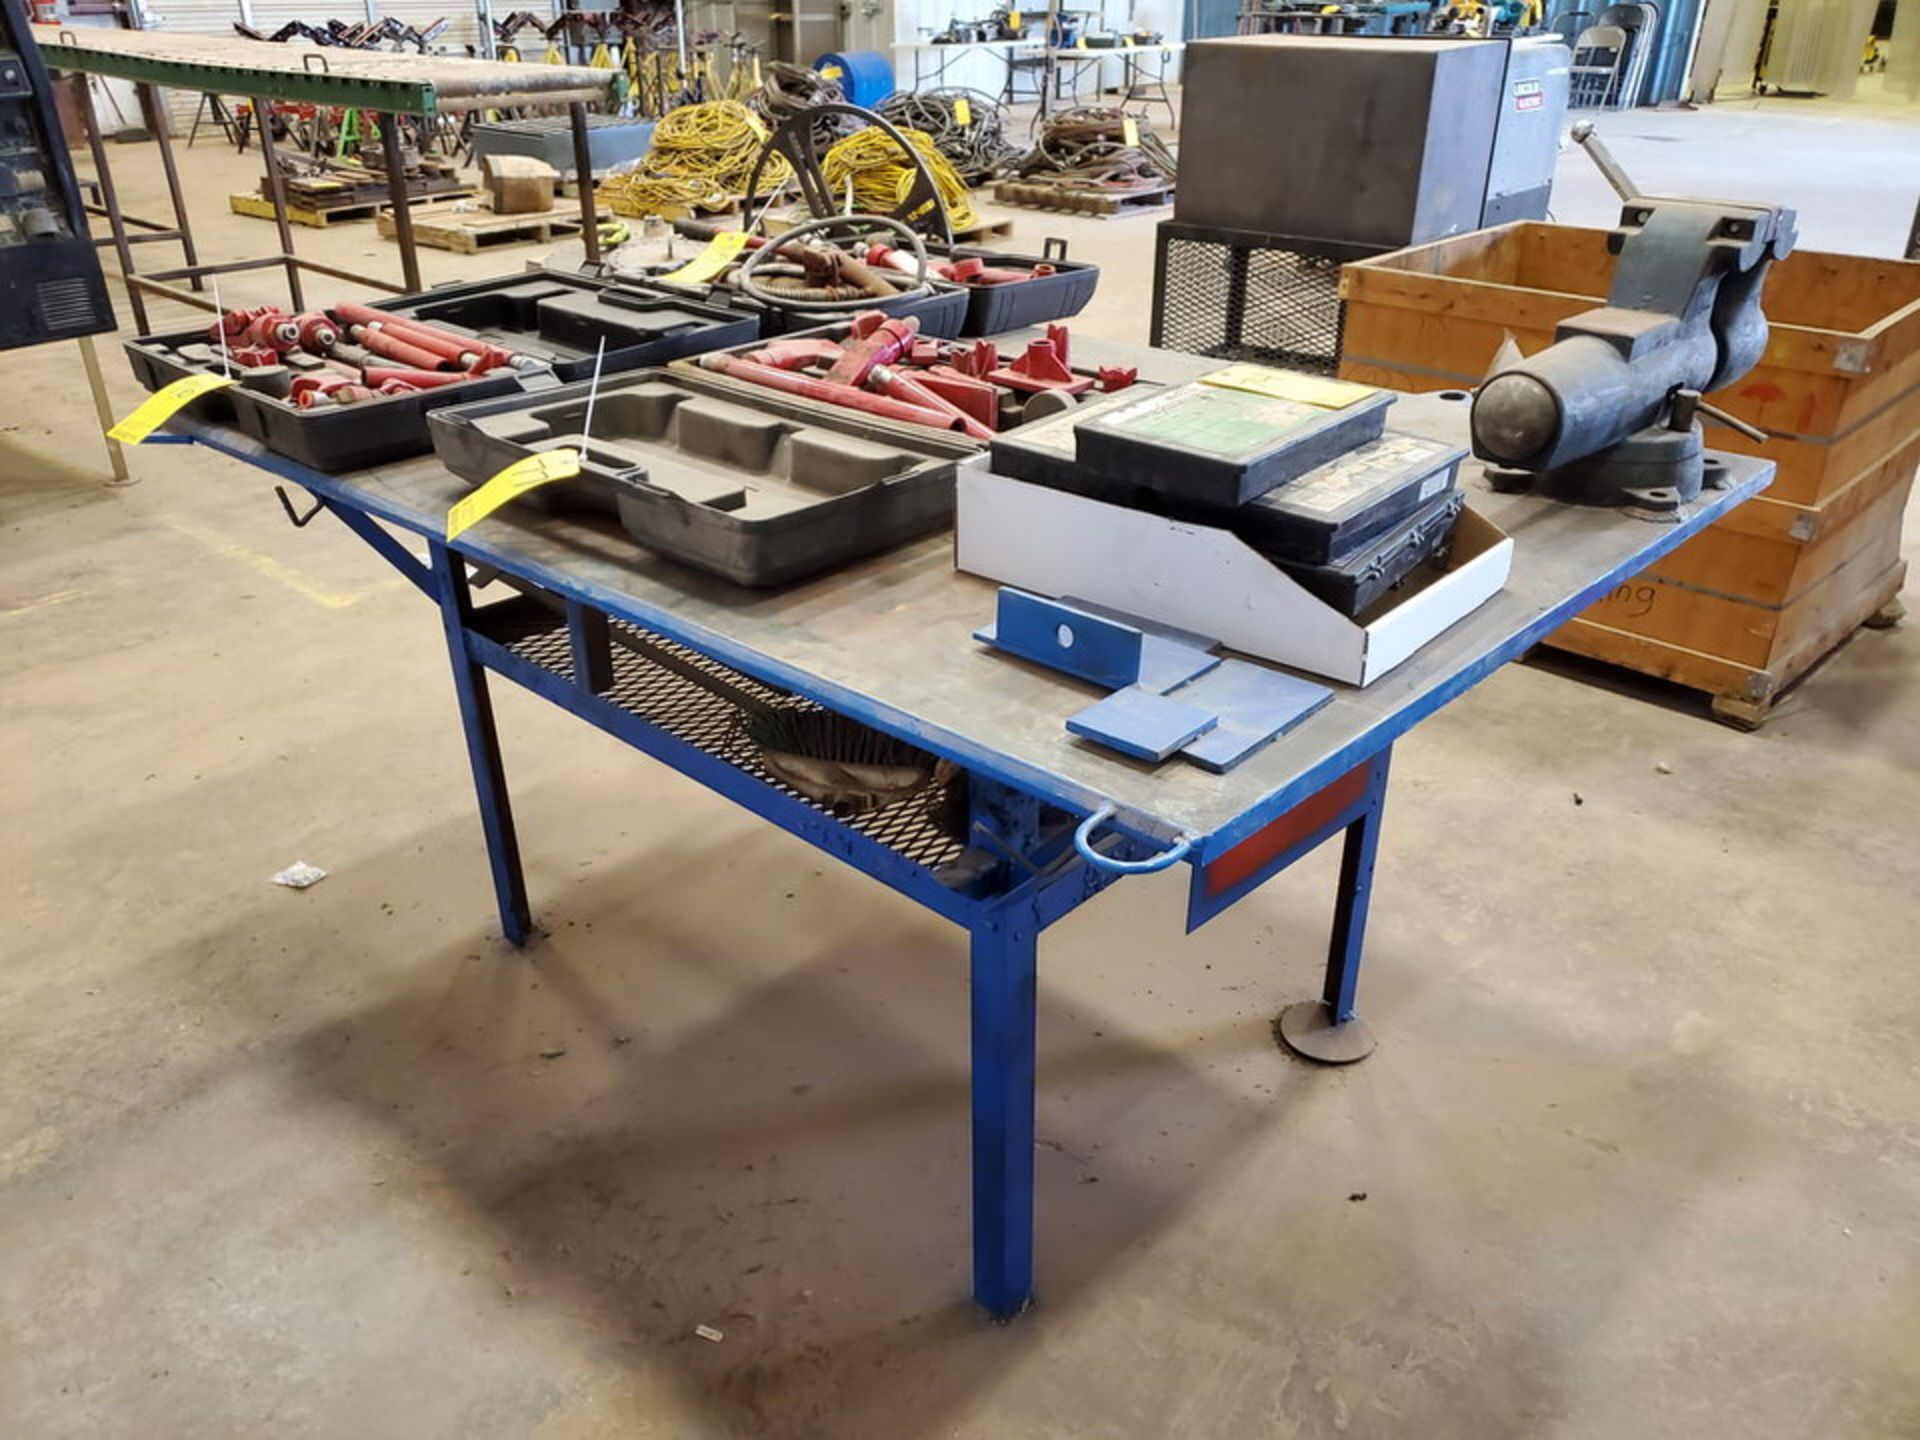 "Stl Welding Table W/ 6"" Vise 48"" x 70"" x 35""H (Material Excluded) - Image 5 of 8"